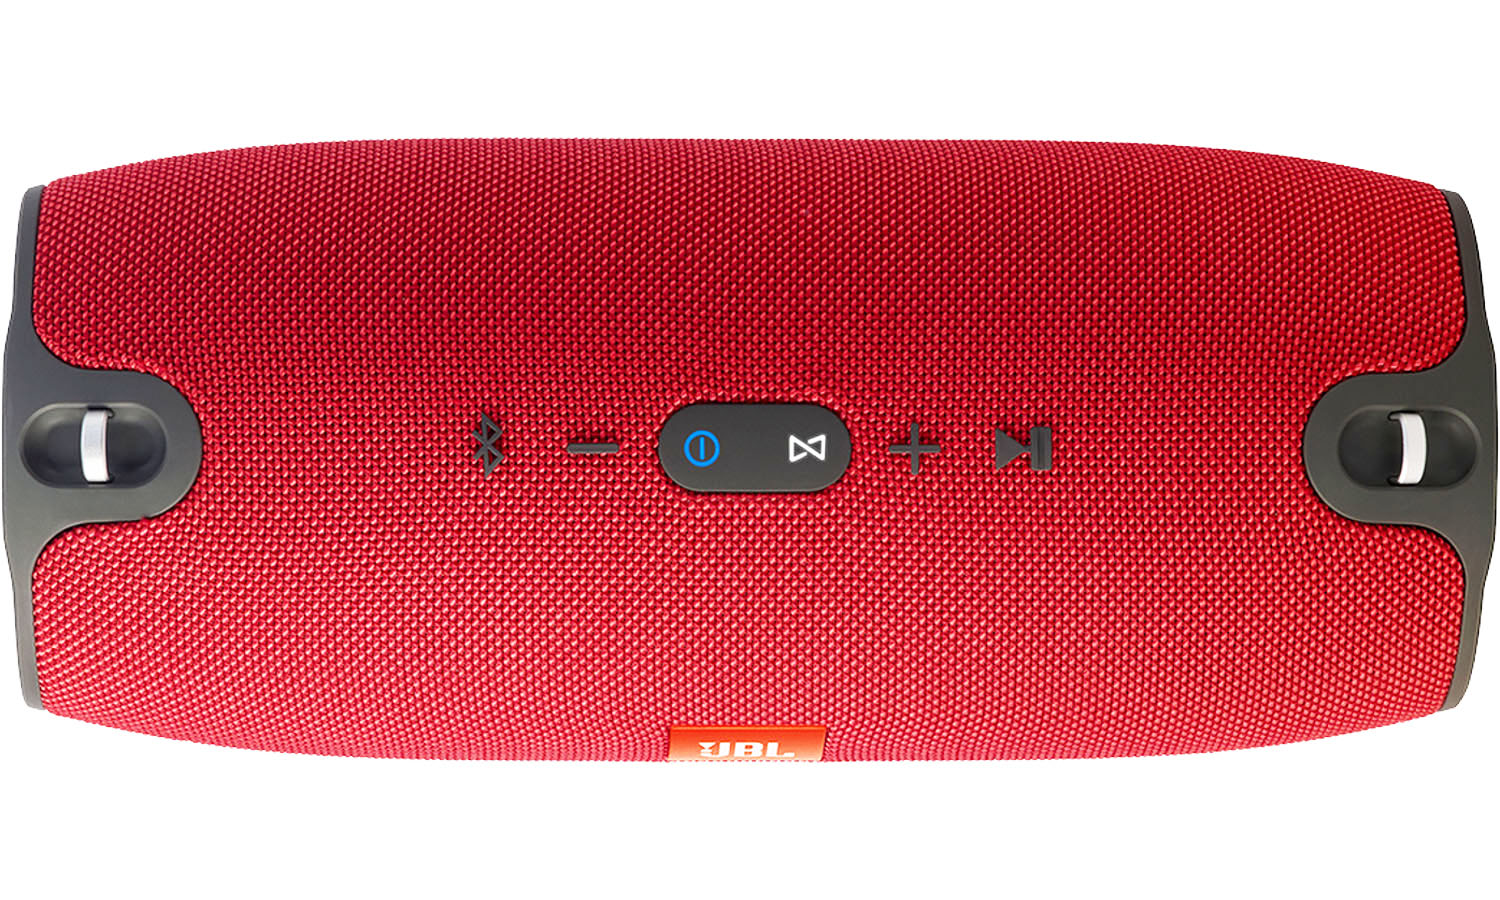 how to change compatibility mode for jbl bluetooth speaker